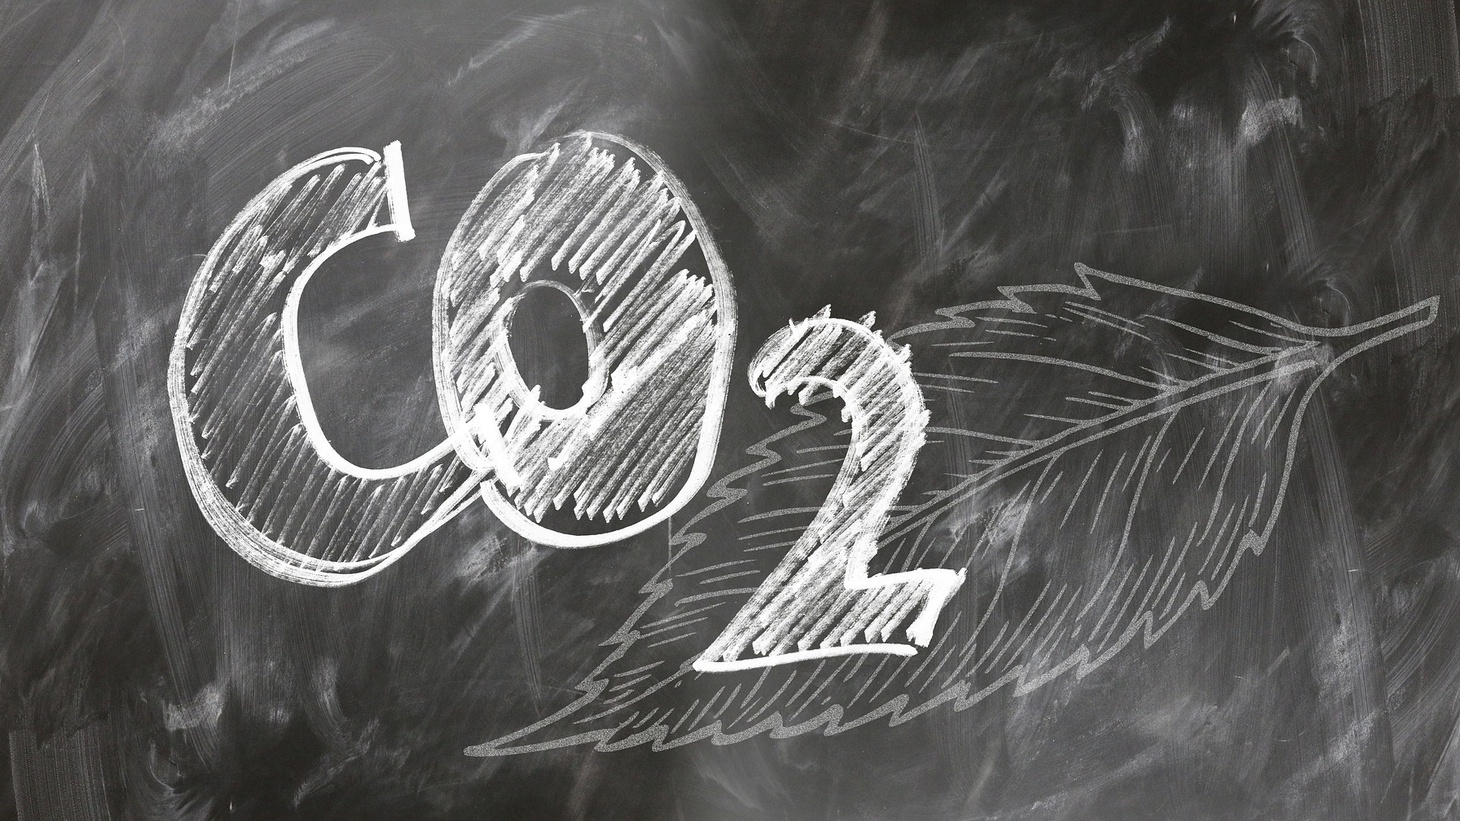 CO2 on a chalkboard.